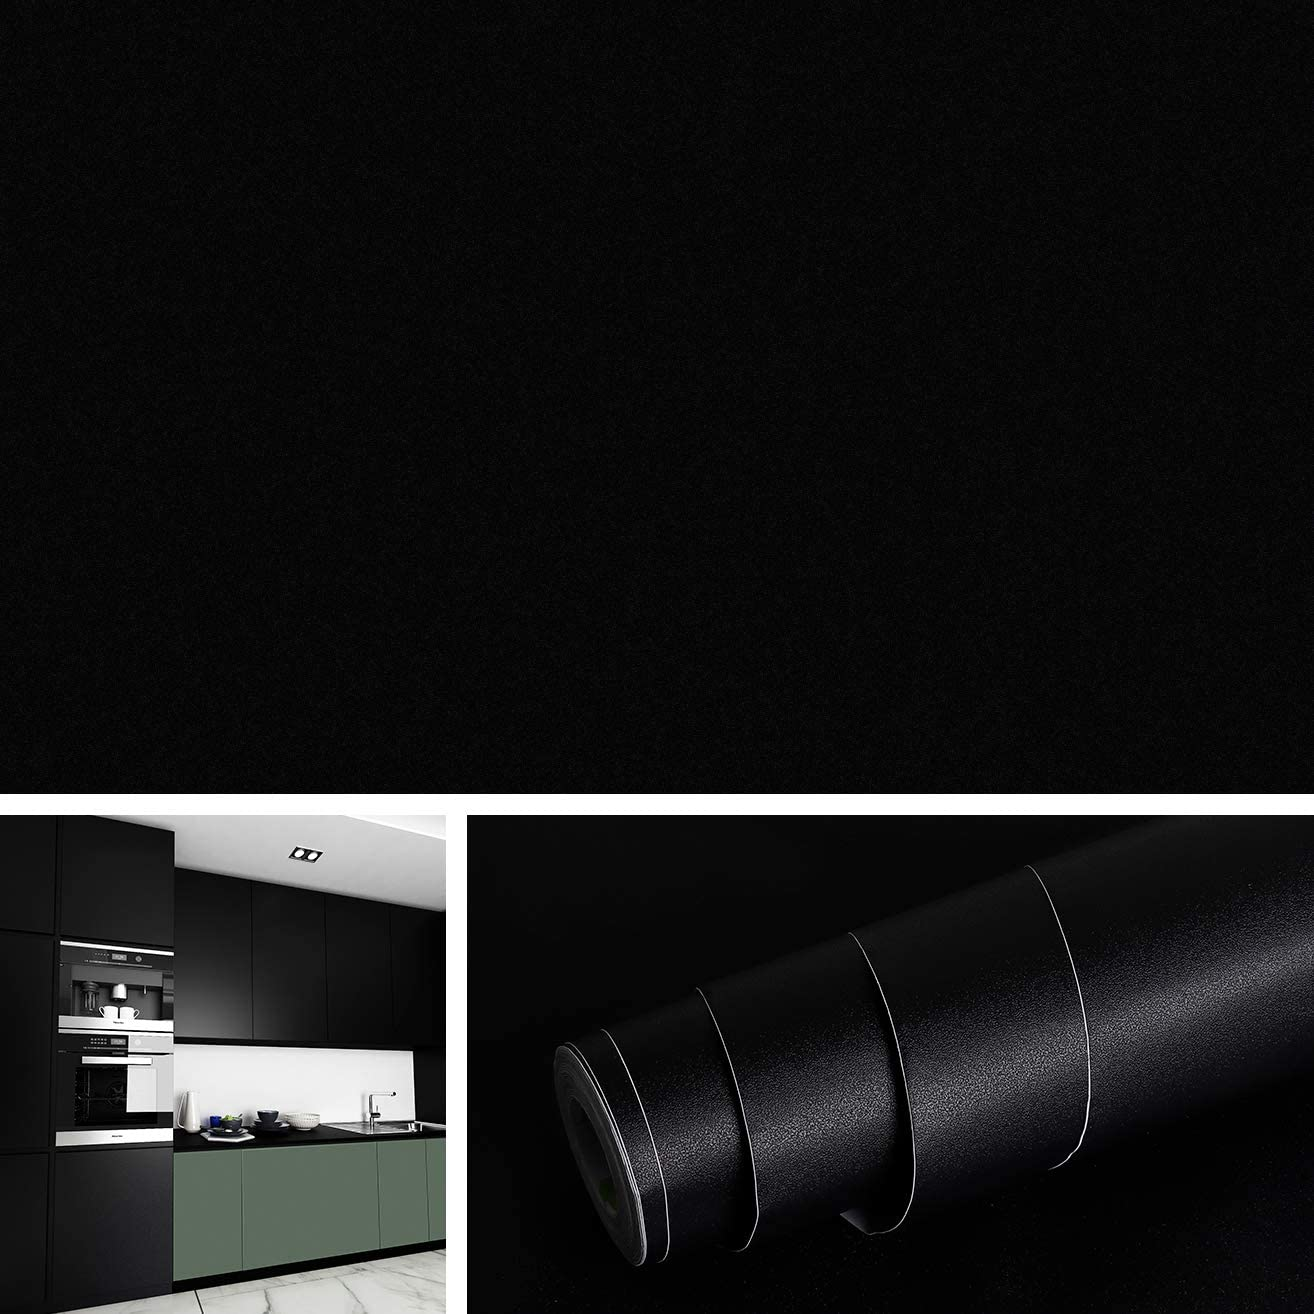 "Livelynine Solid Black Wallpaper Stick and Peel Removable Black Wall Paper for Walls Old Furniture Matte Black Vinyl Adhesive Shelf Liners for Kitchen Cabinets 15.8""x78.8""Roll"